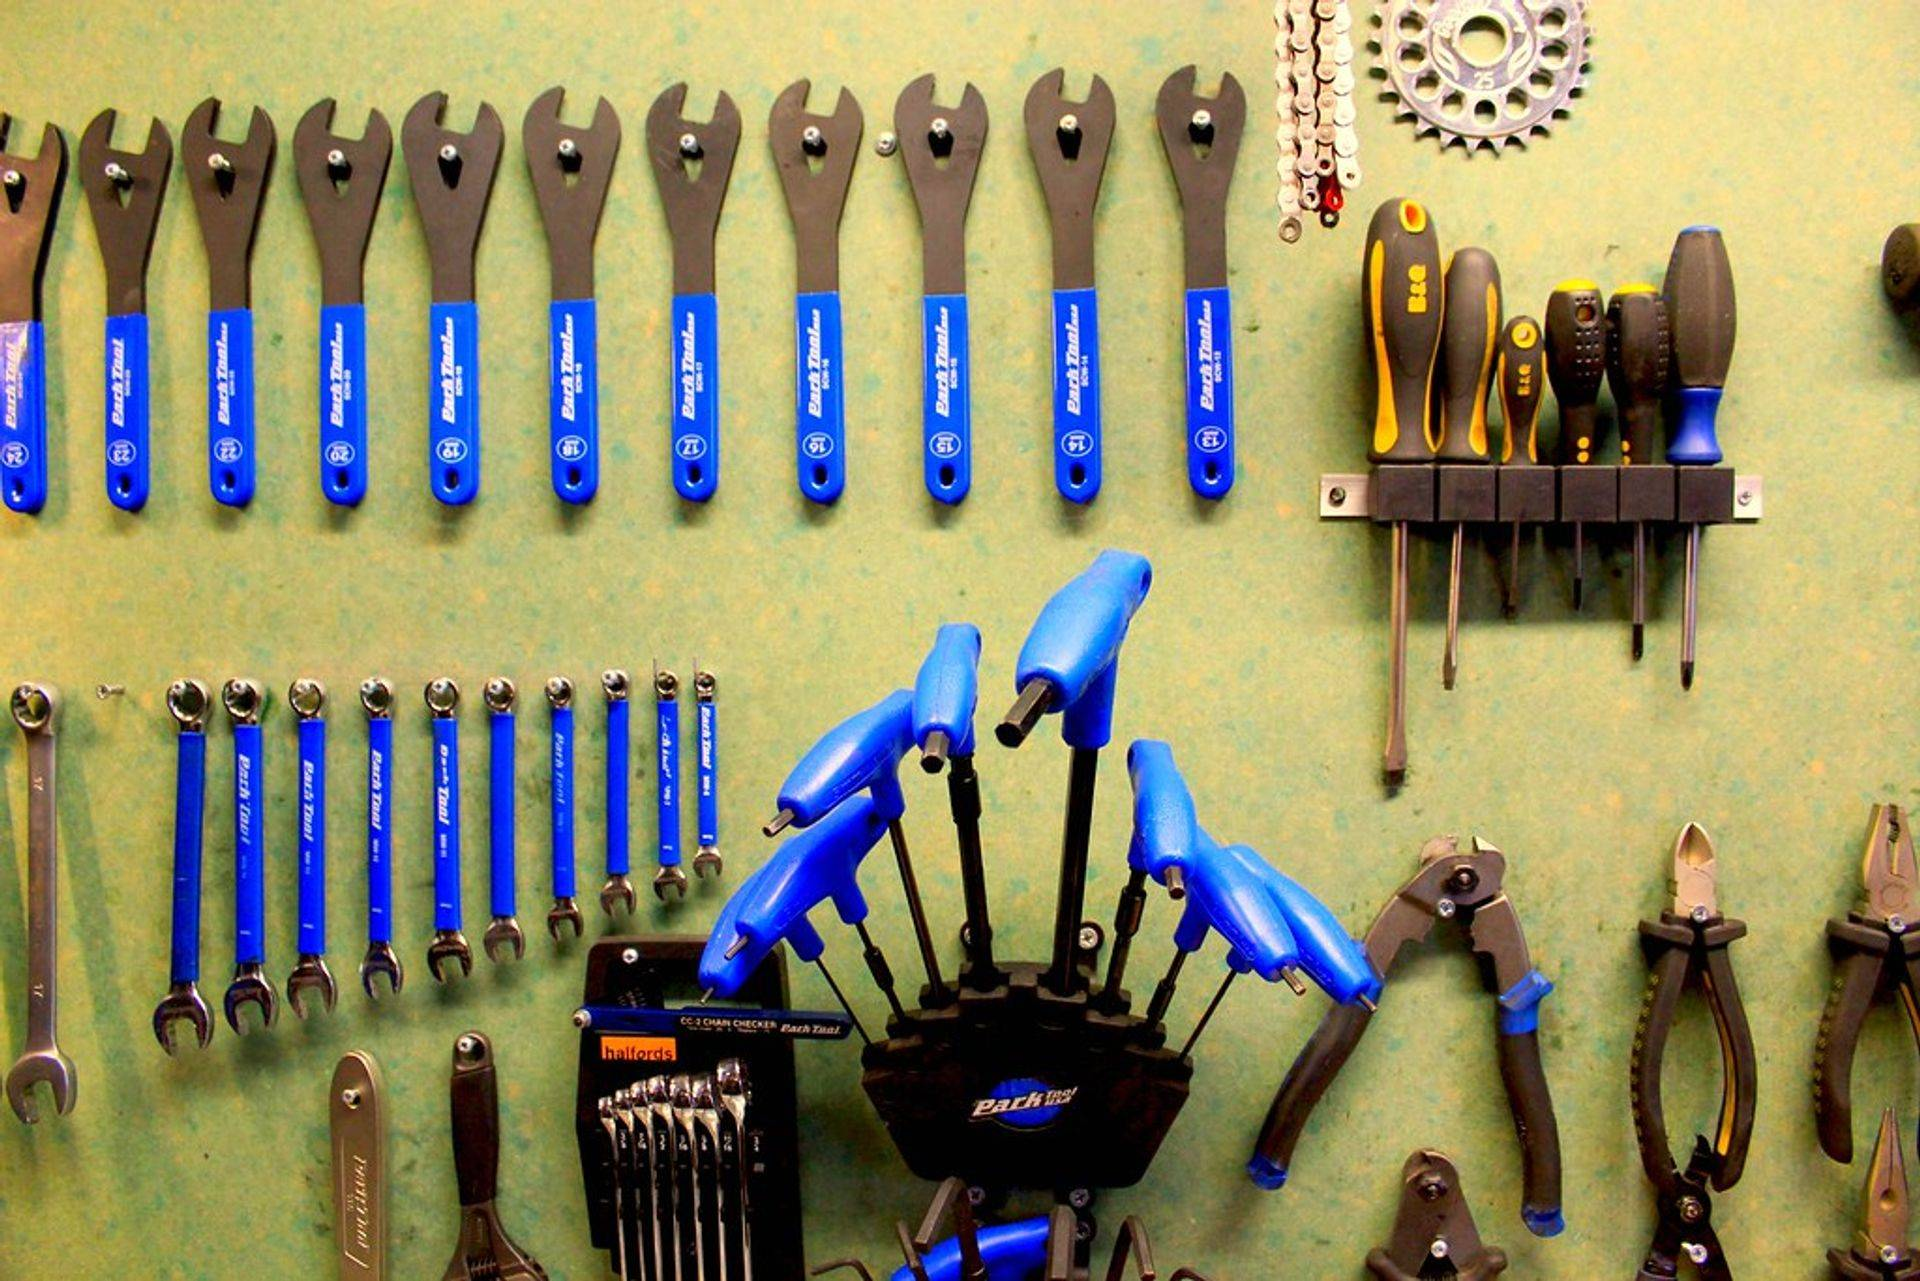 Some tools that we use